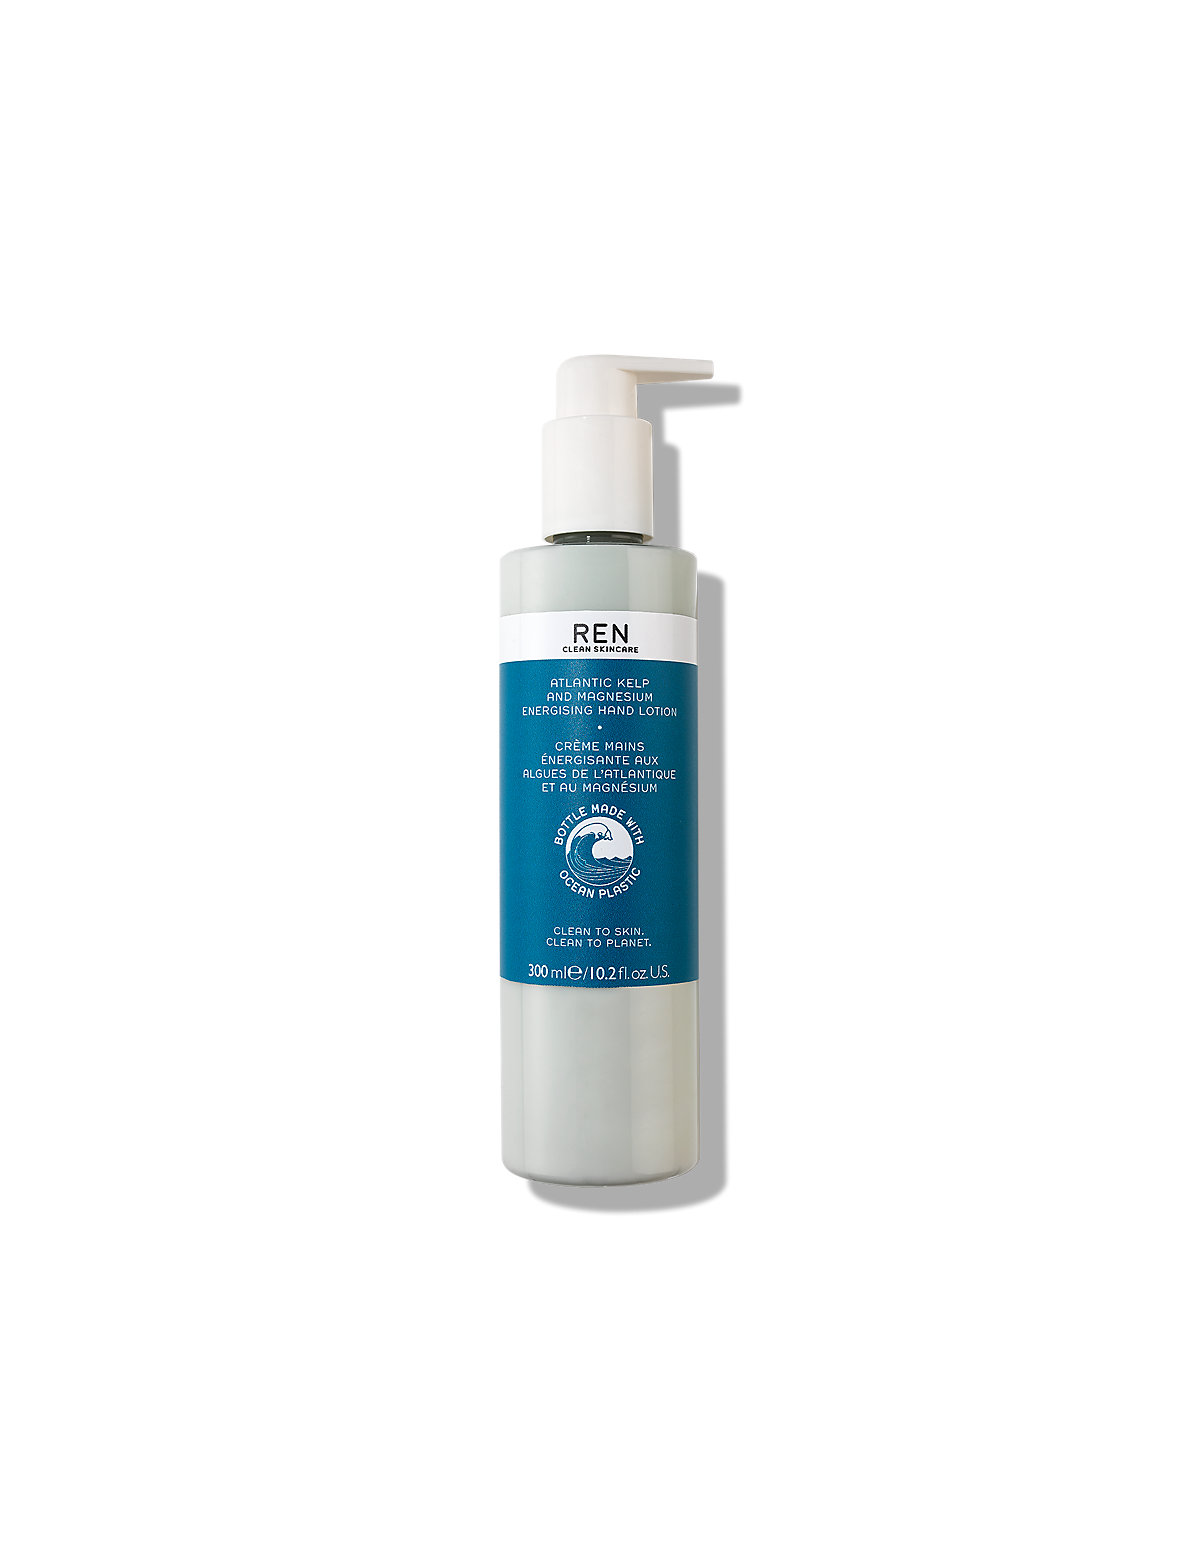 REN Atlantic Kelp Hand Lotion 300ml